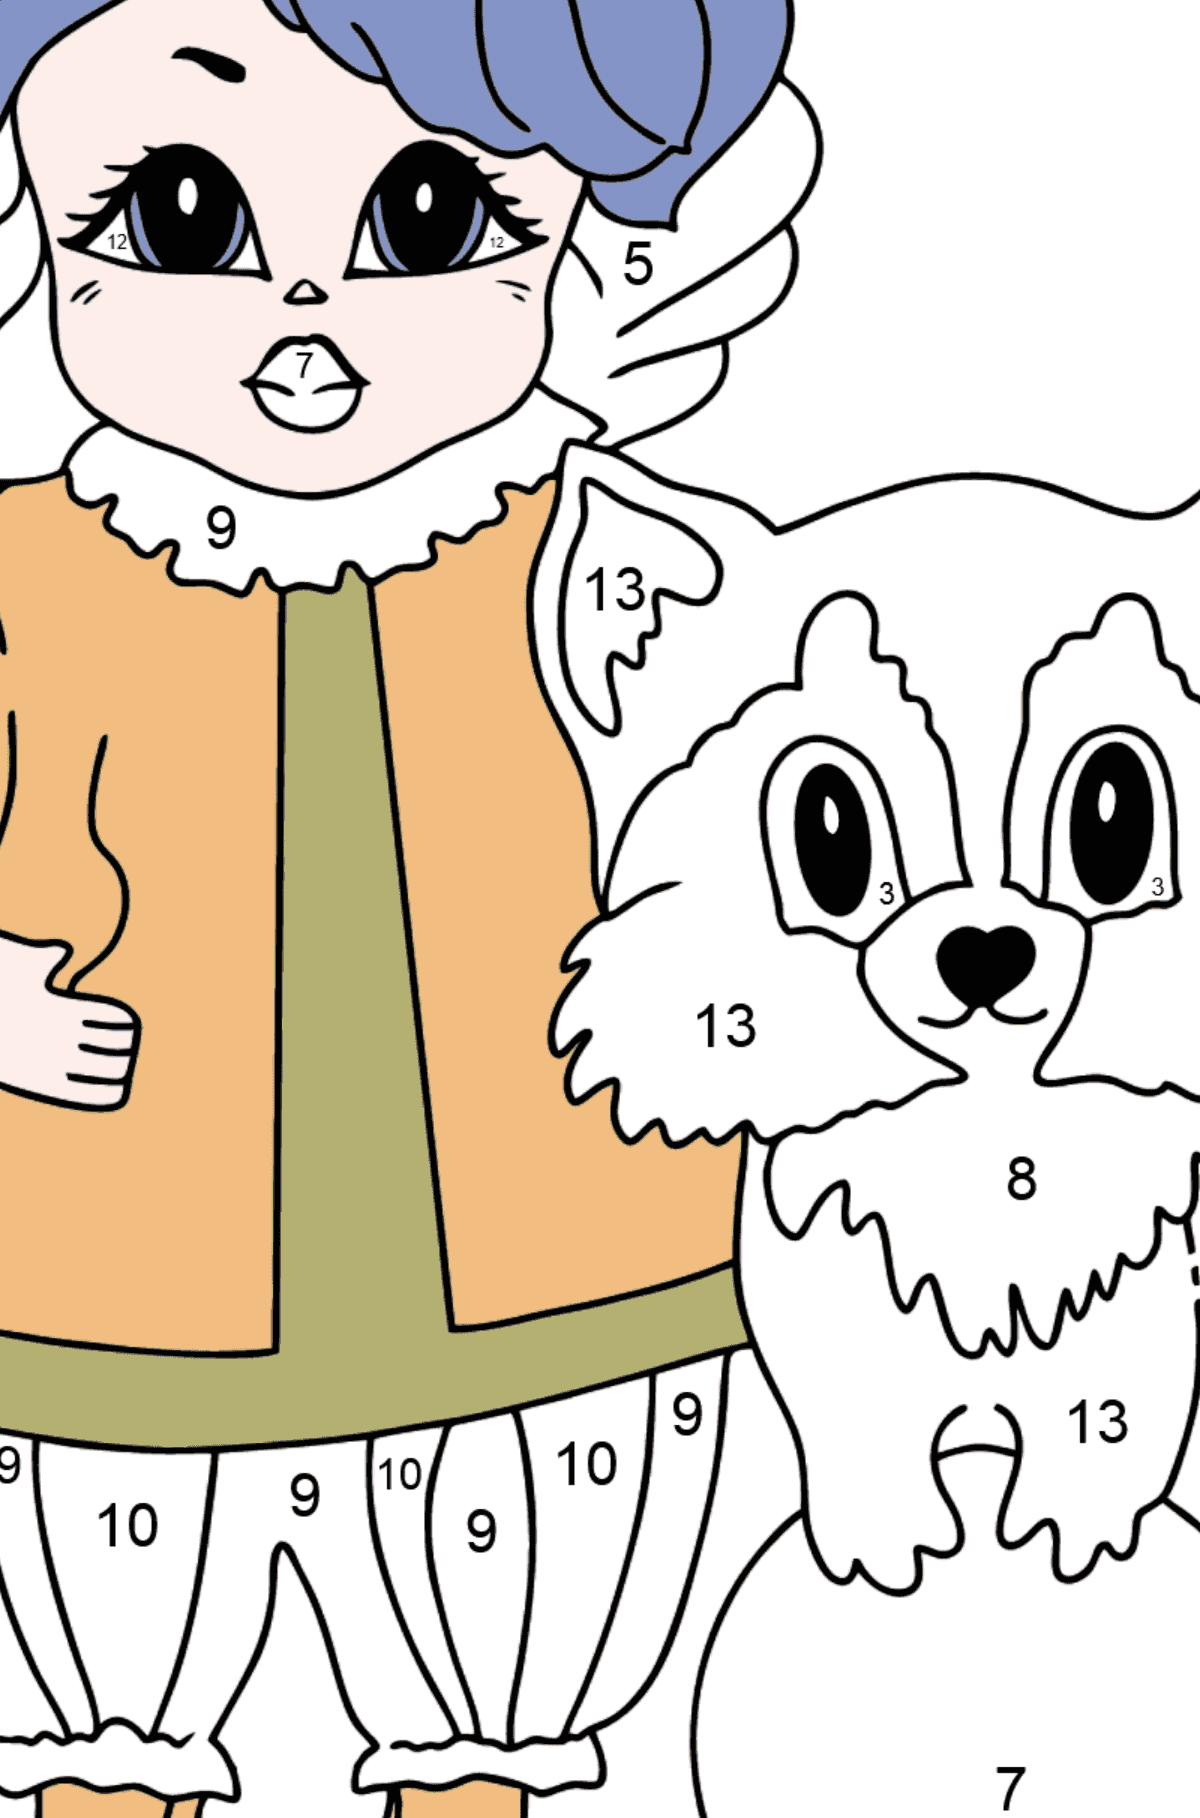 Coloring Page - A Princess with a Cat and a Racoon - Coloring by Numbers for Kids